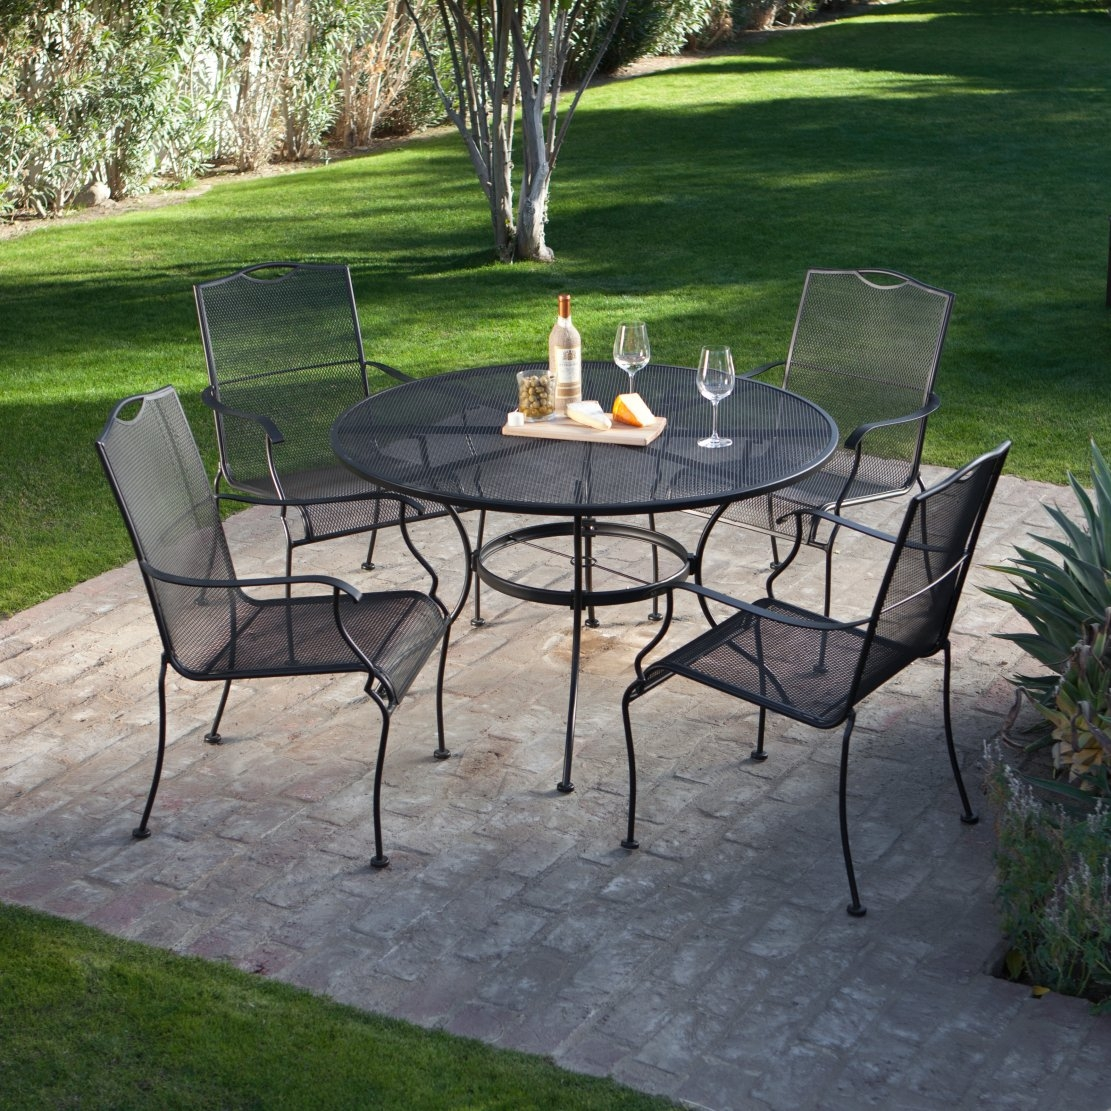 Outdoor Patio Furniture Dining Table 5 Piece Wrought Iron Patio Furniture Dining Set Seats 4